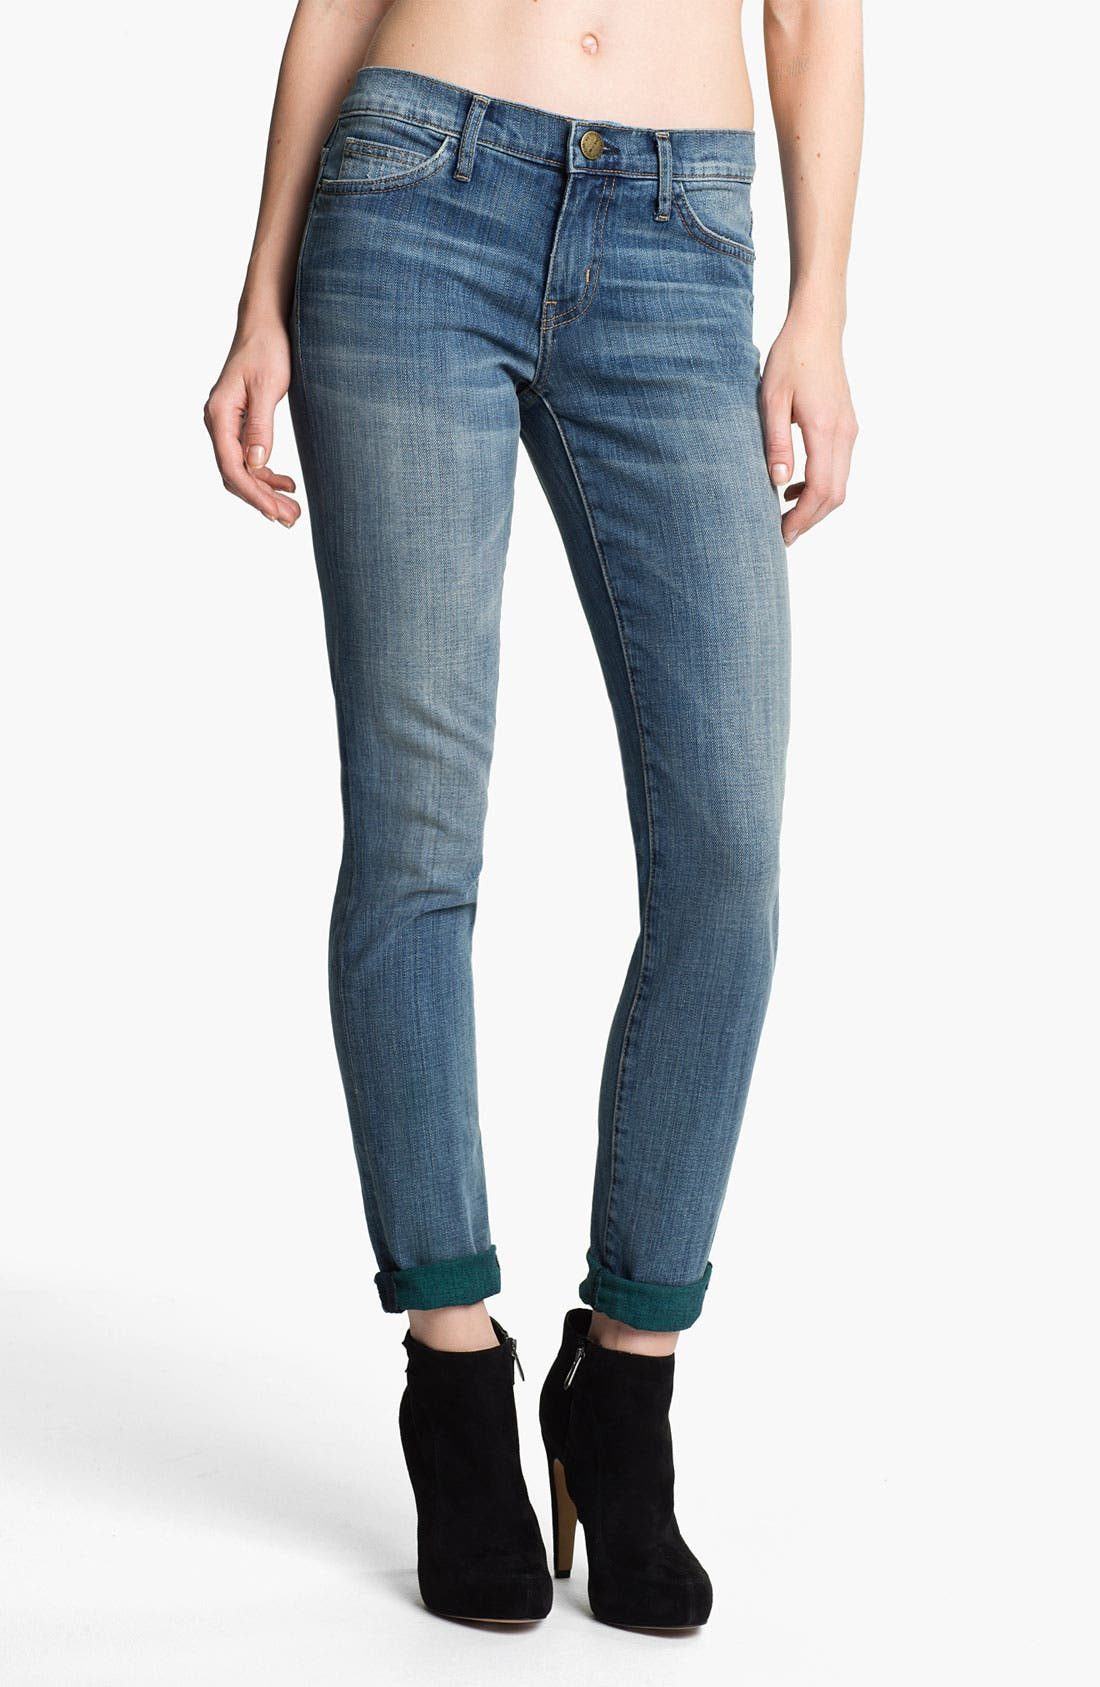 Alternate Image 1 Selected - Current/Elliott 'The Rolled' Stretch Jeans (Baltic Super)